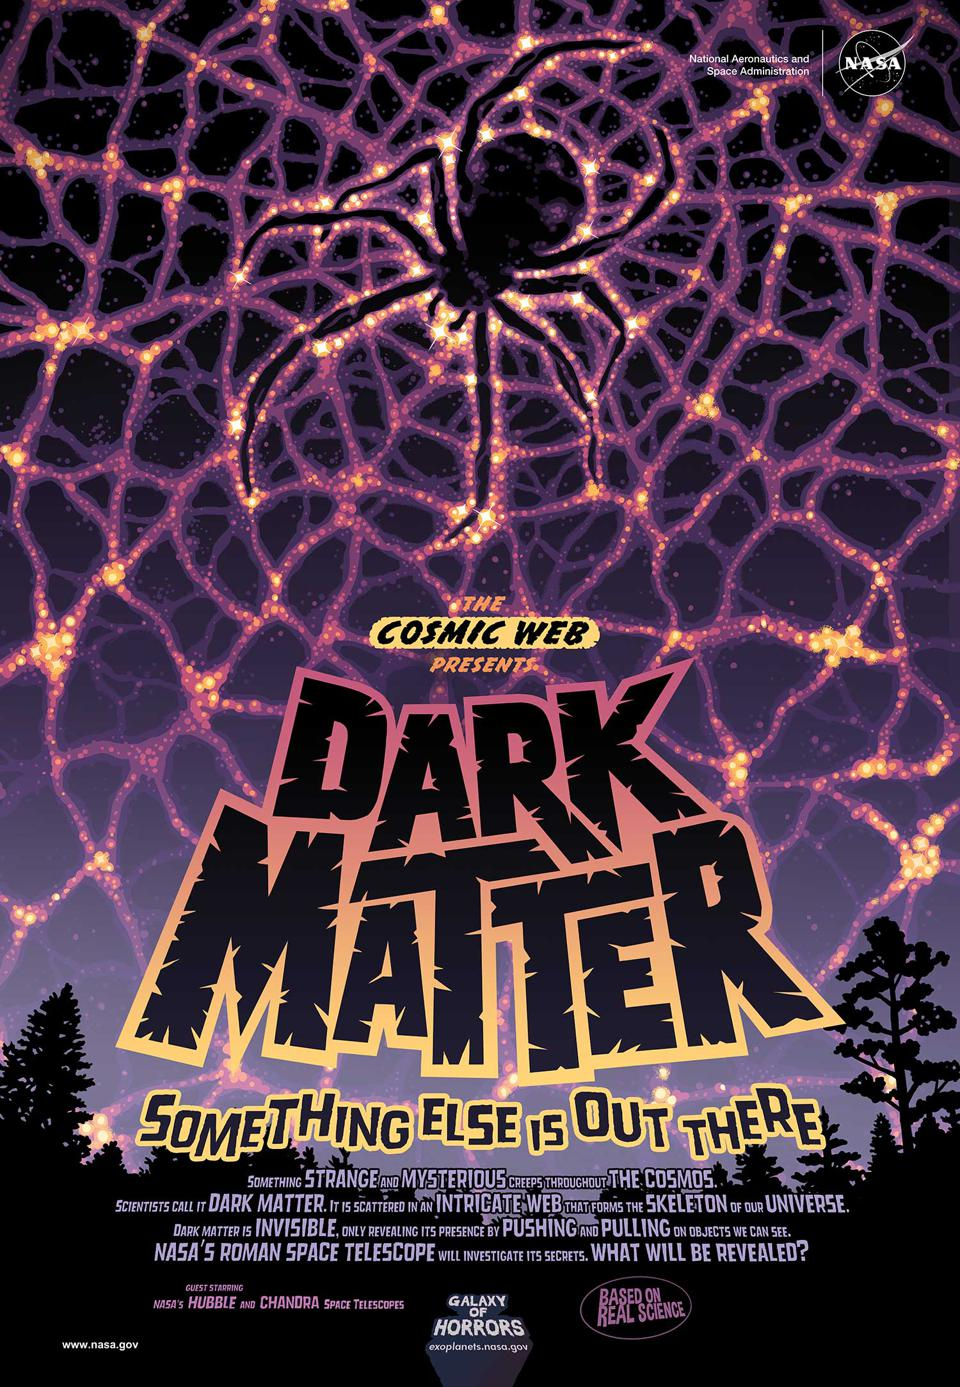 vintage style movie poster ″Dark Matter: Something else is out there″